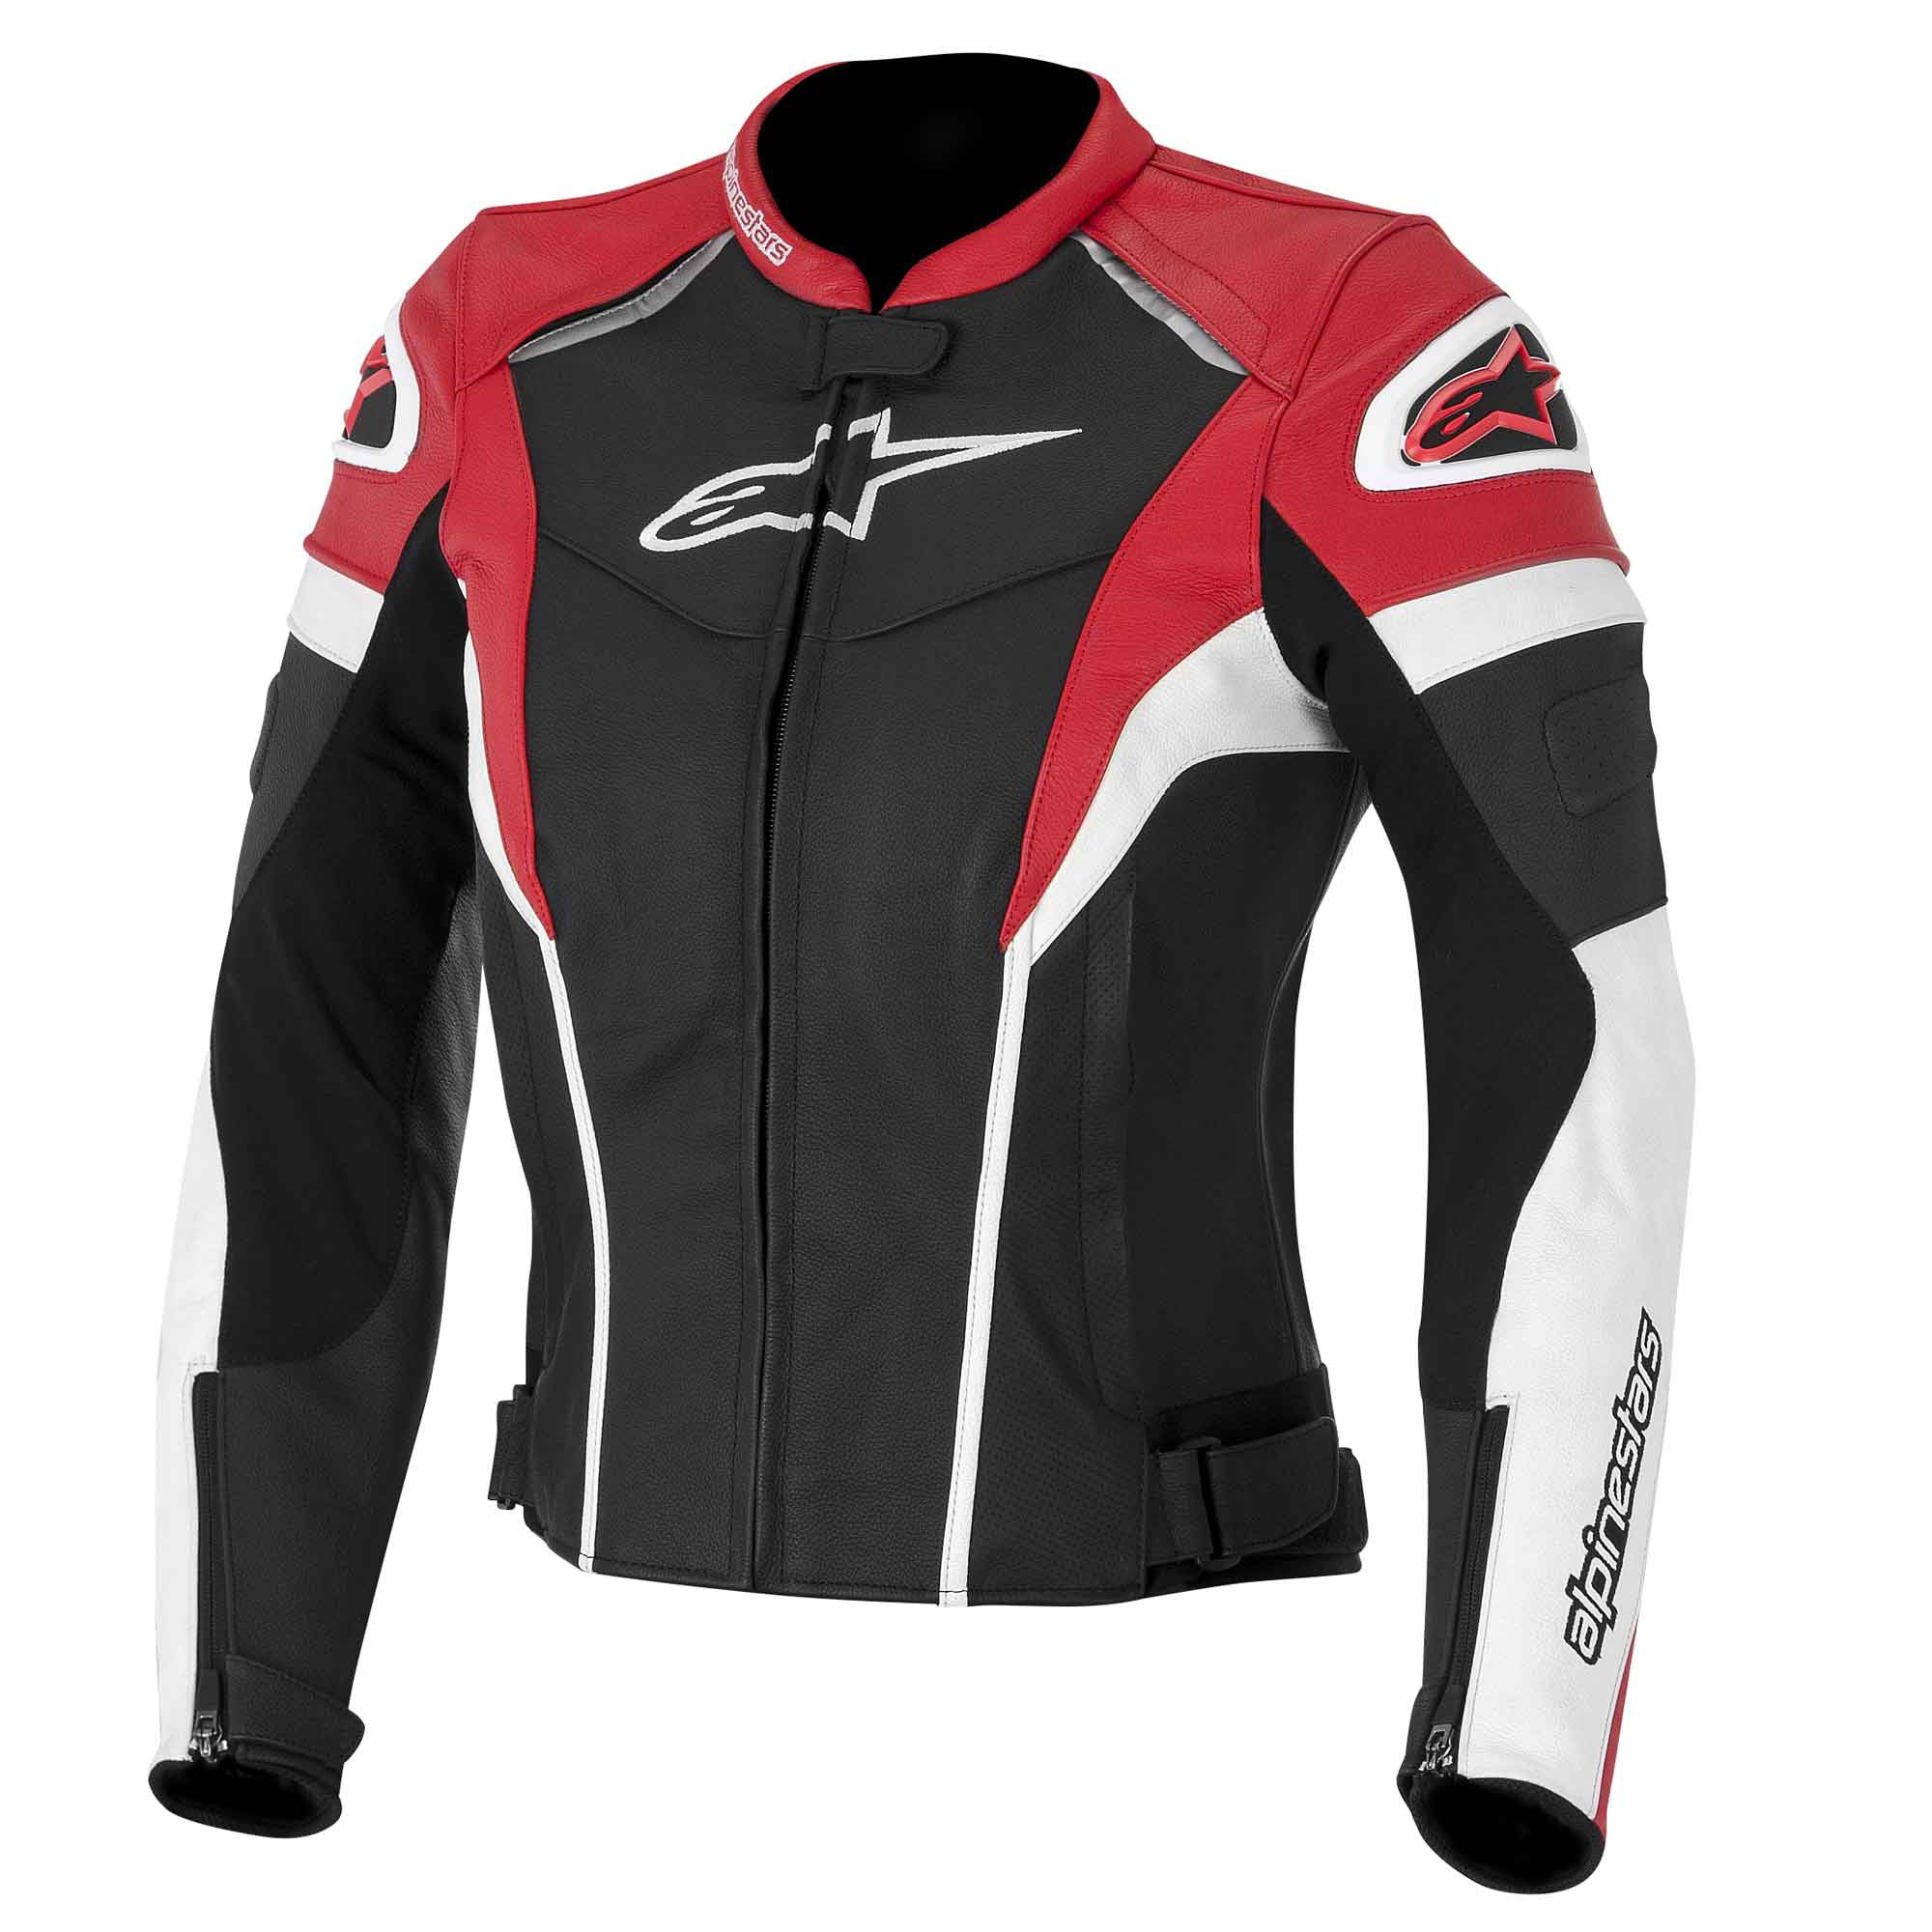 alpinestars_stella_gp_plusR_womens_perforated_leather_jacket